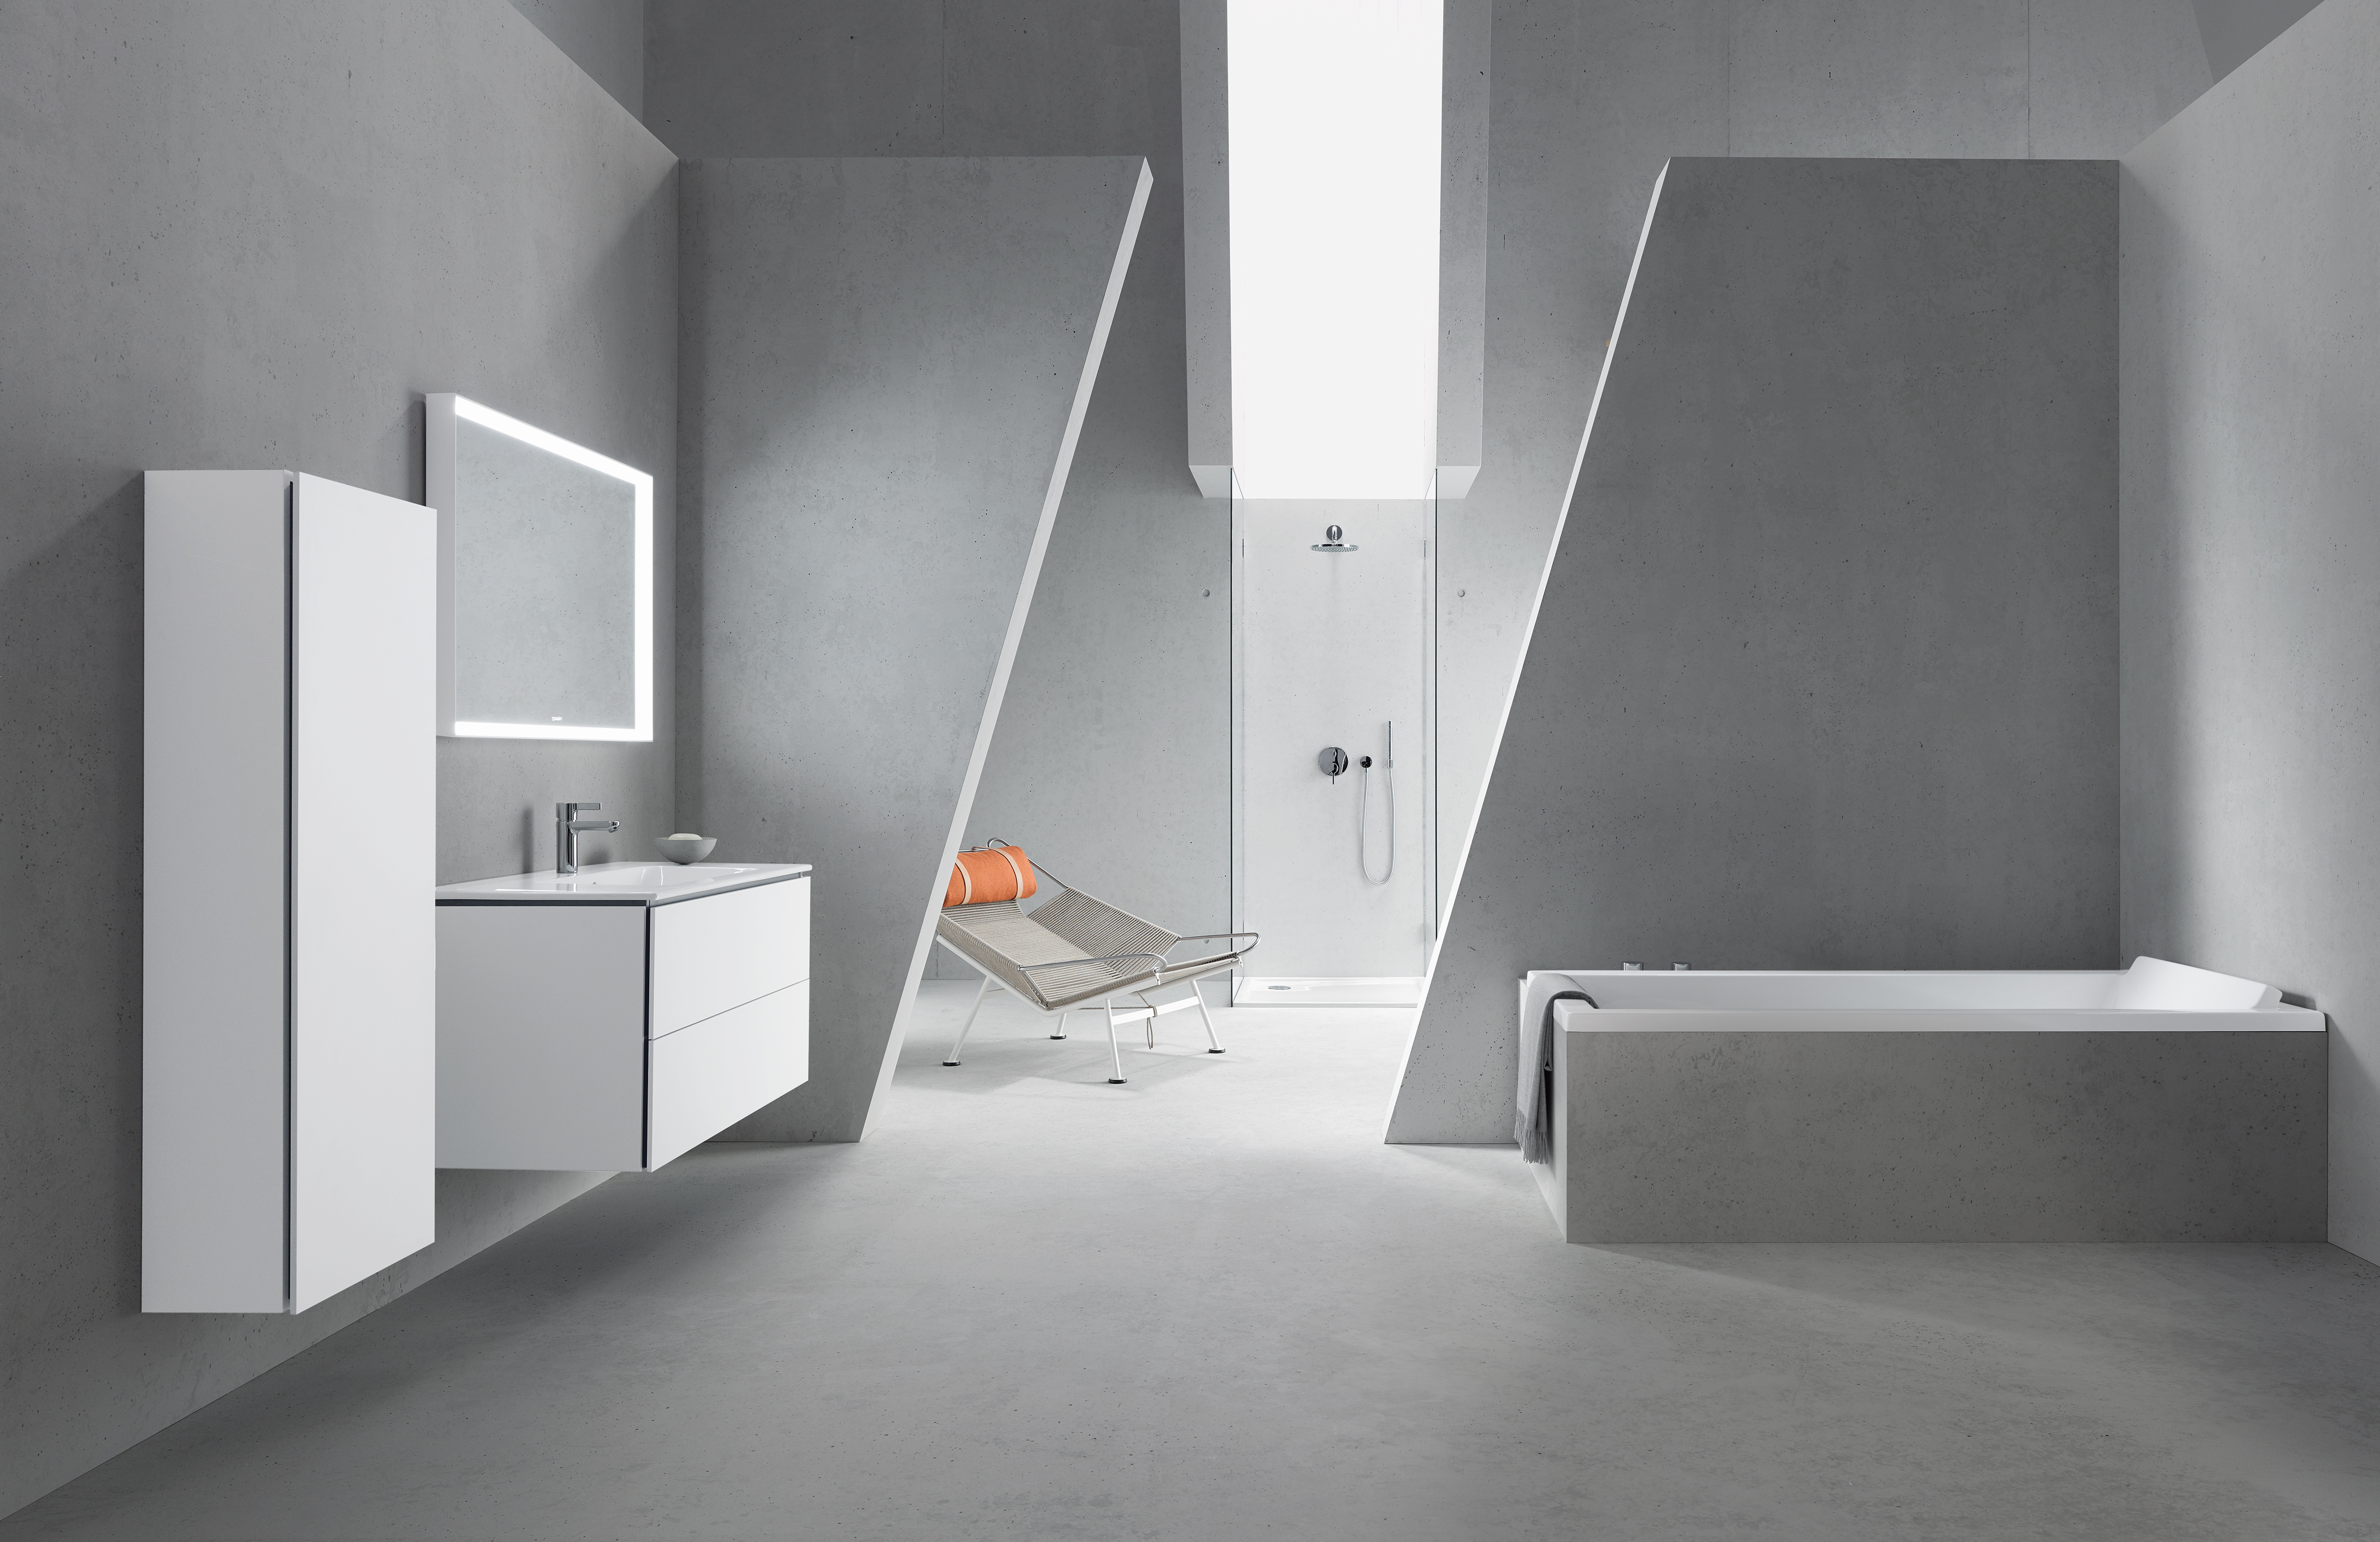 Design By Philippe Starck ME By Starck